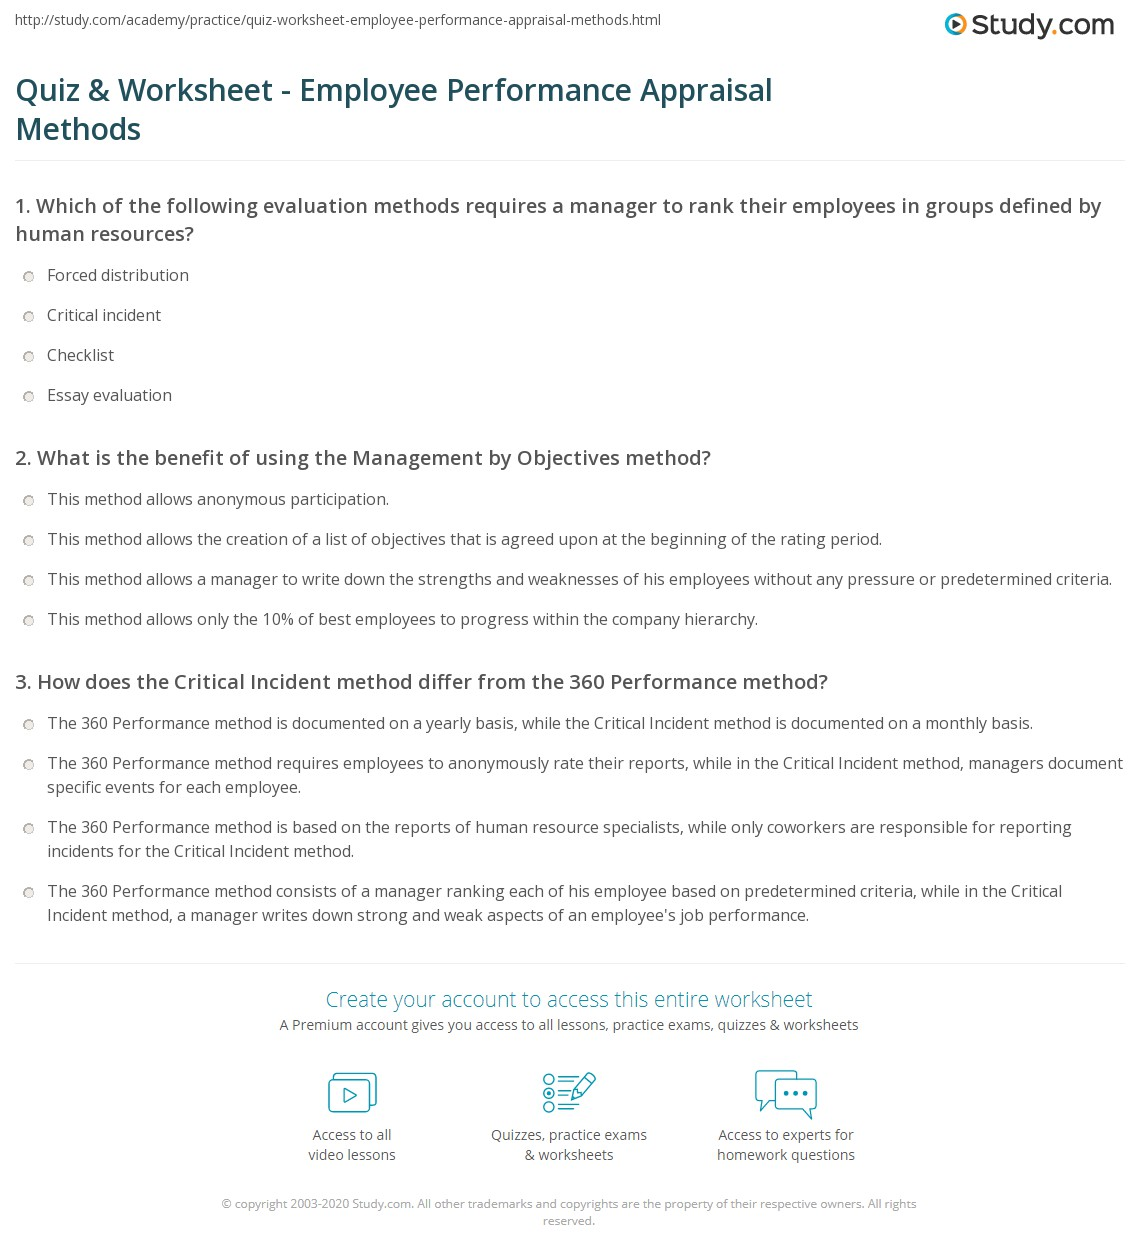 print employee performance appraisal methods process examples worksheet